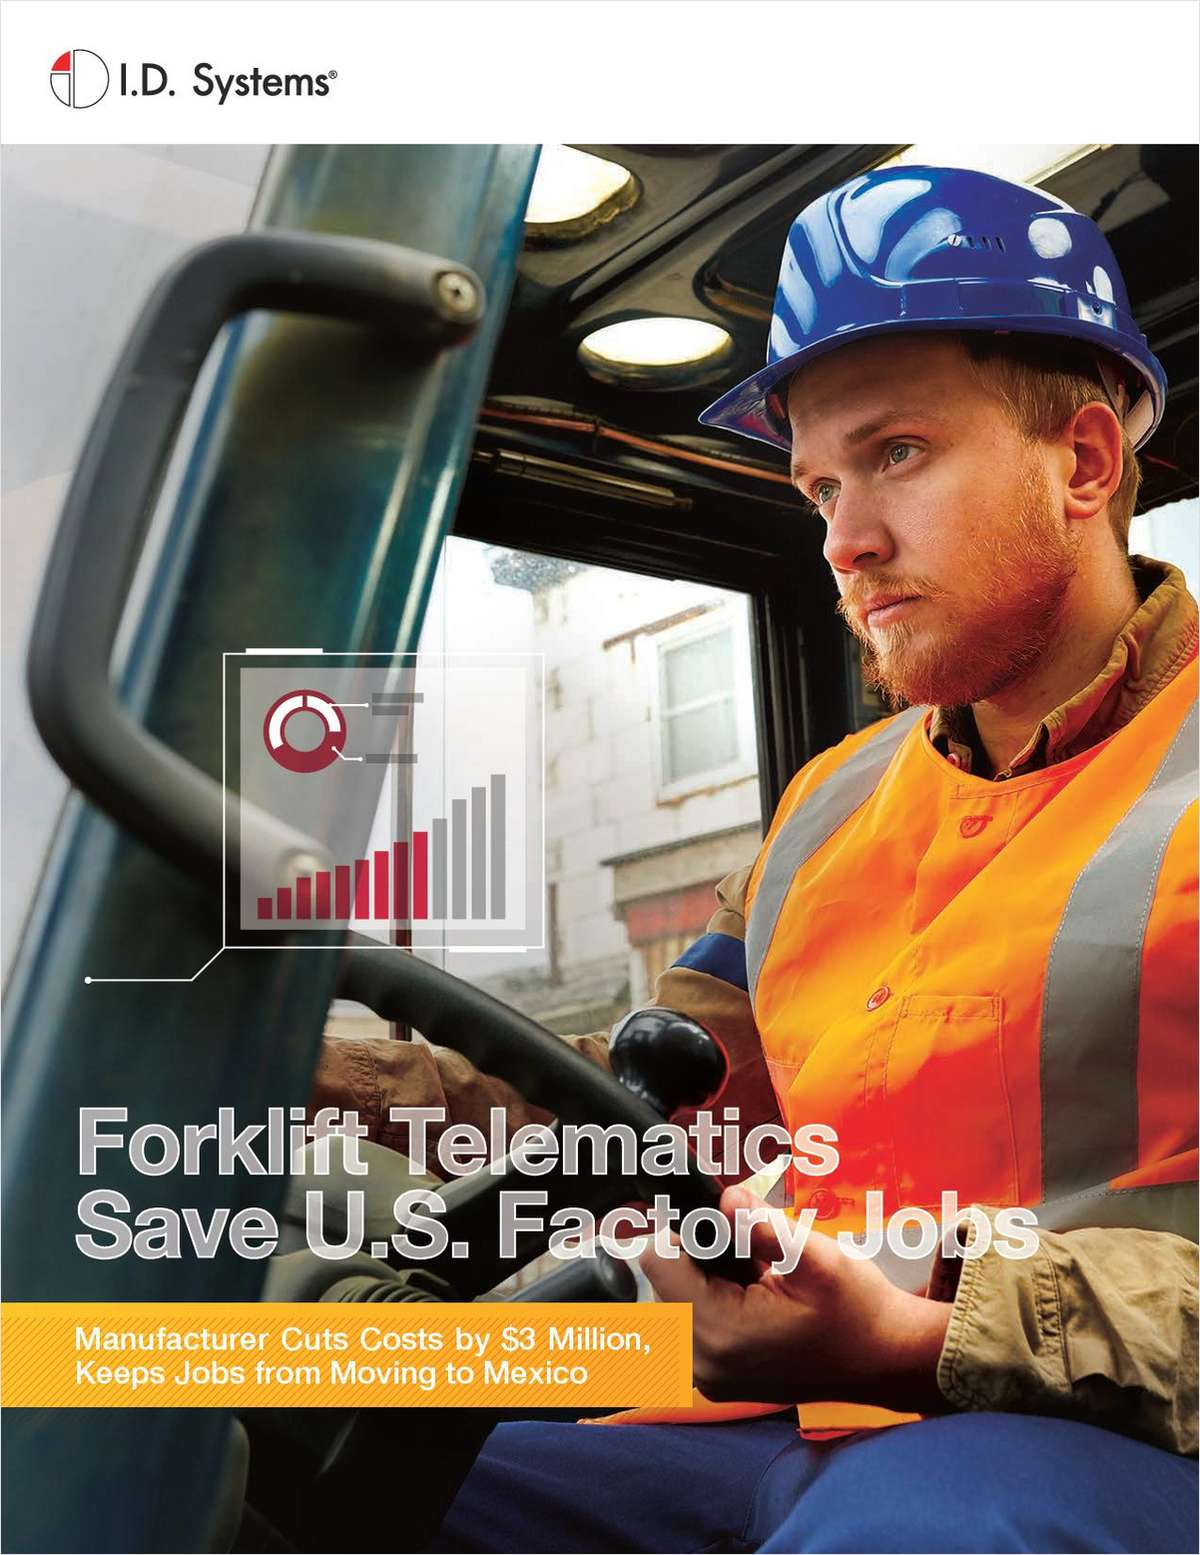 Forklift Telematics Save U.S. Factory Jobs